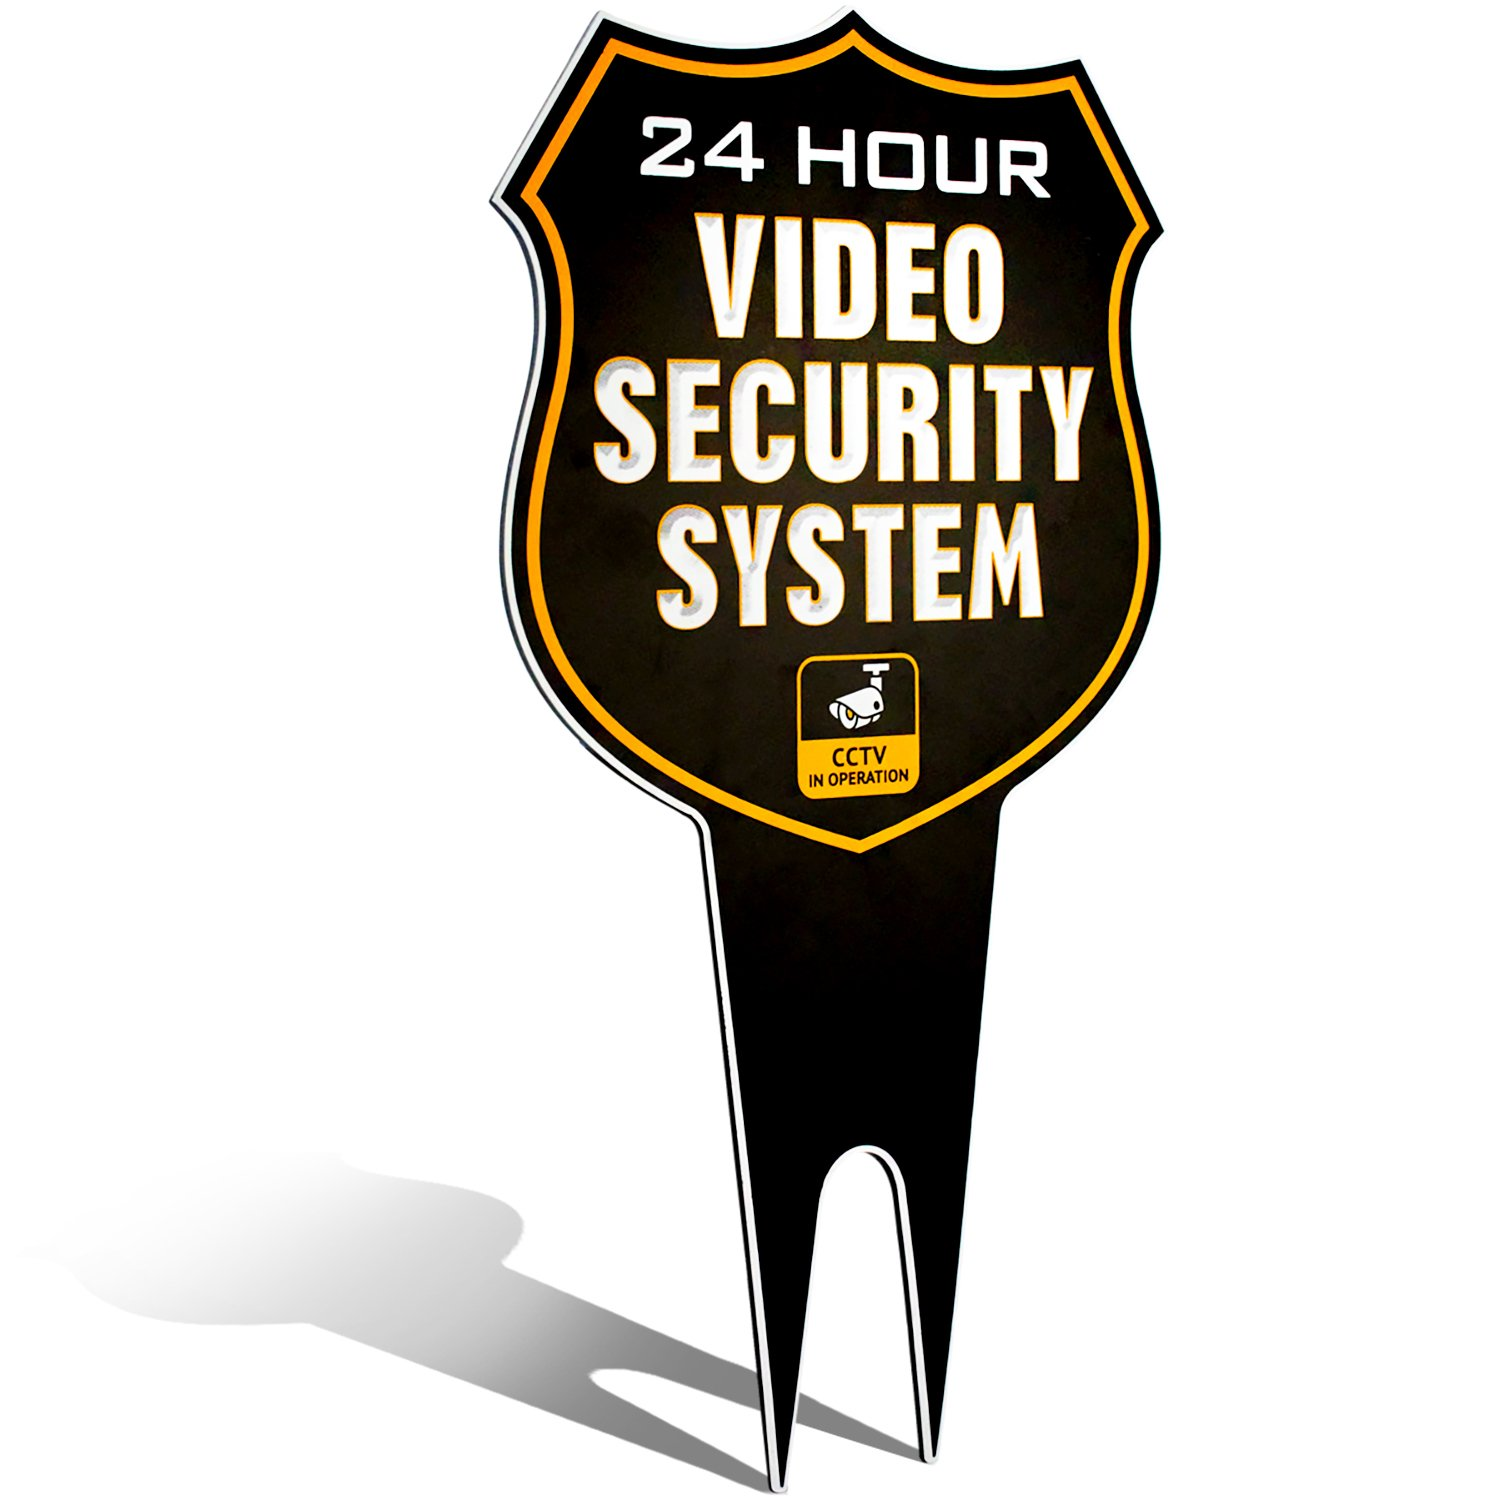 Ultra Reflective Warning 24 Hour Video Surveillance Security Camera System in Operation Metal Yard Sign | Stylish Laser Cut SHIELD Design | Heavy Duty 1/8'' Thick DiBond Aluminum (Reflective)